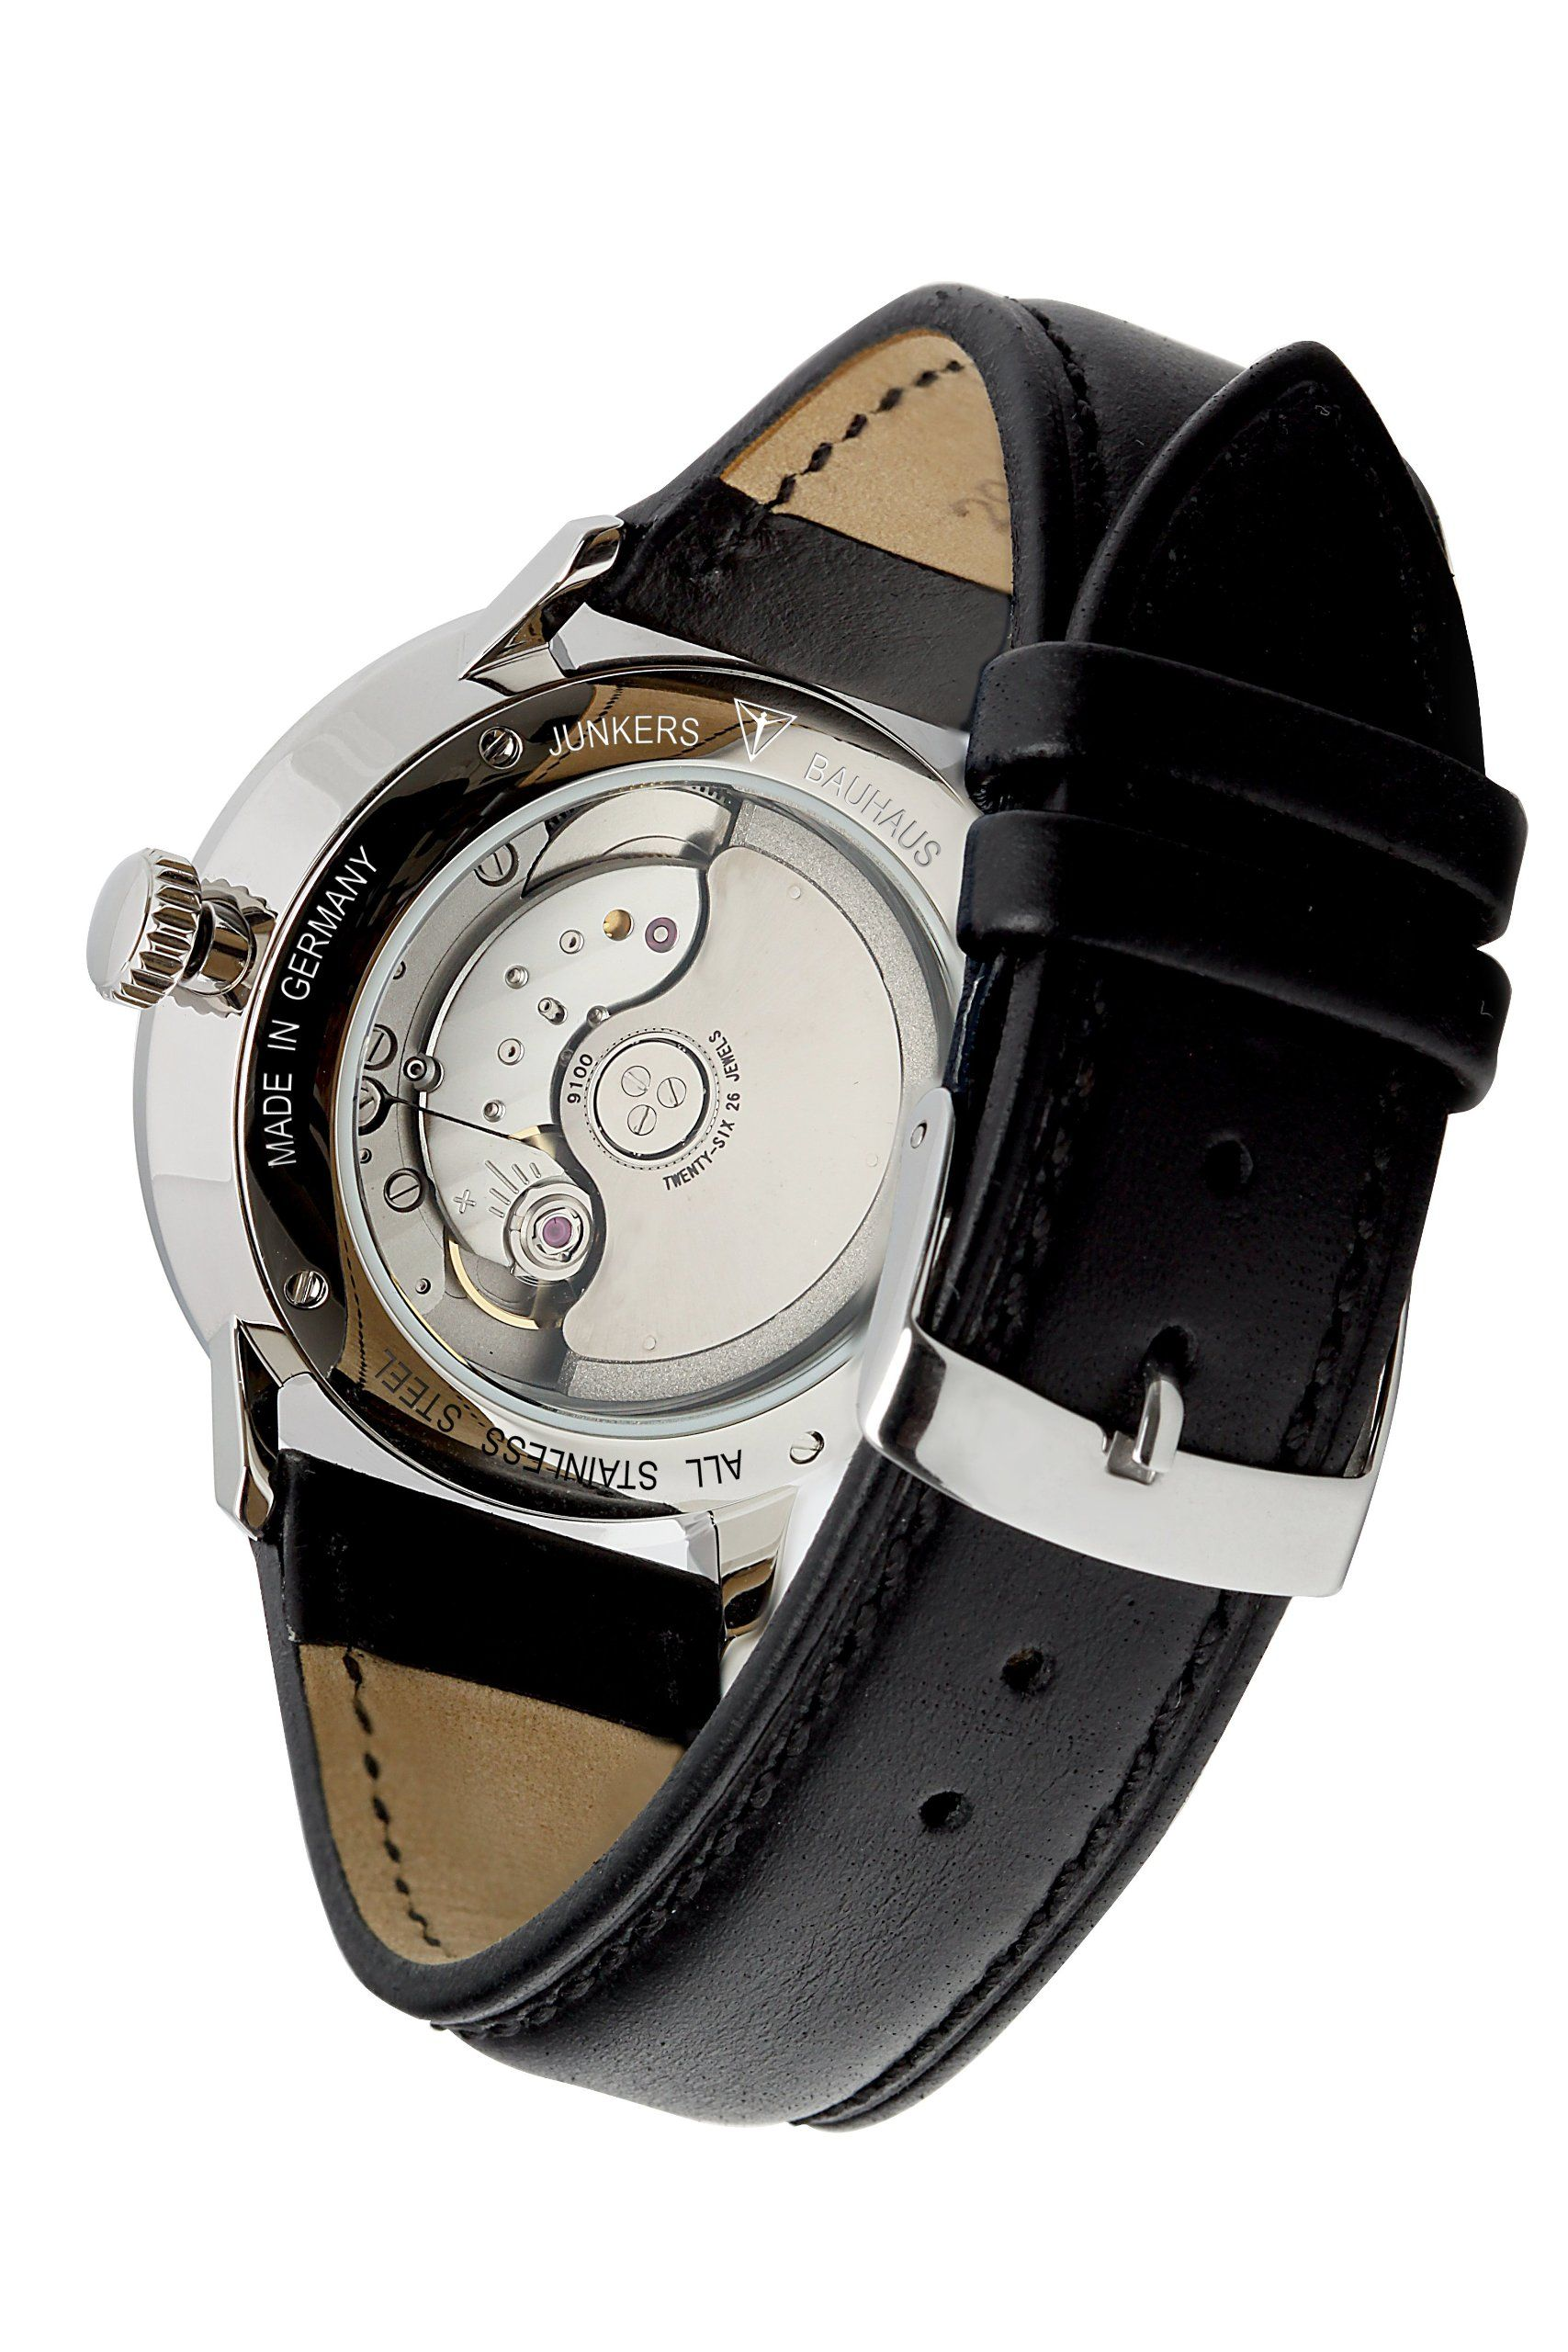 index the modern bauhaus inspired watches forum v discussion watch